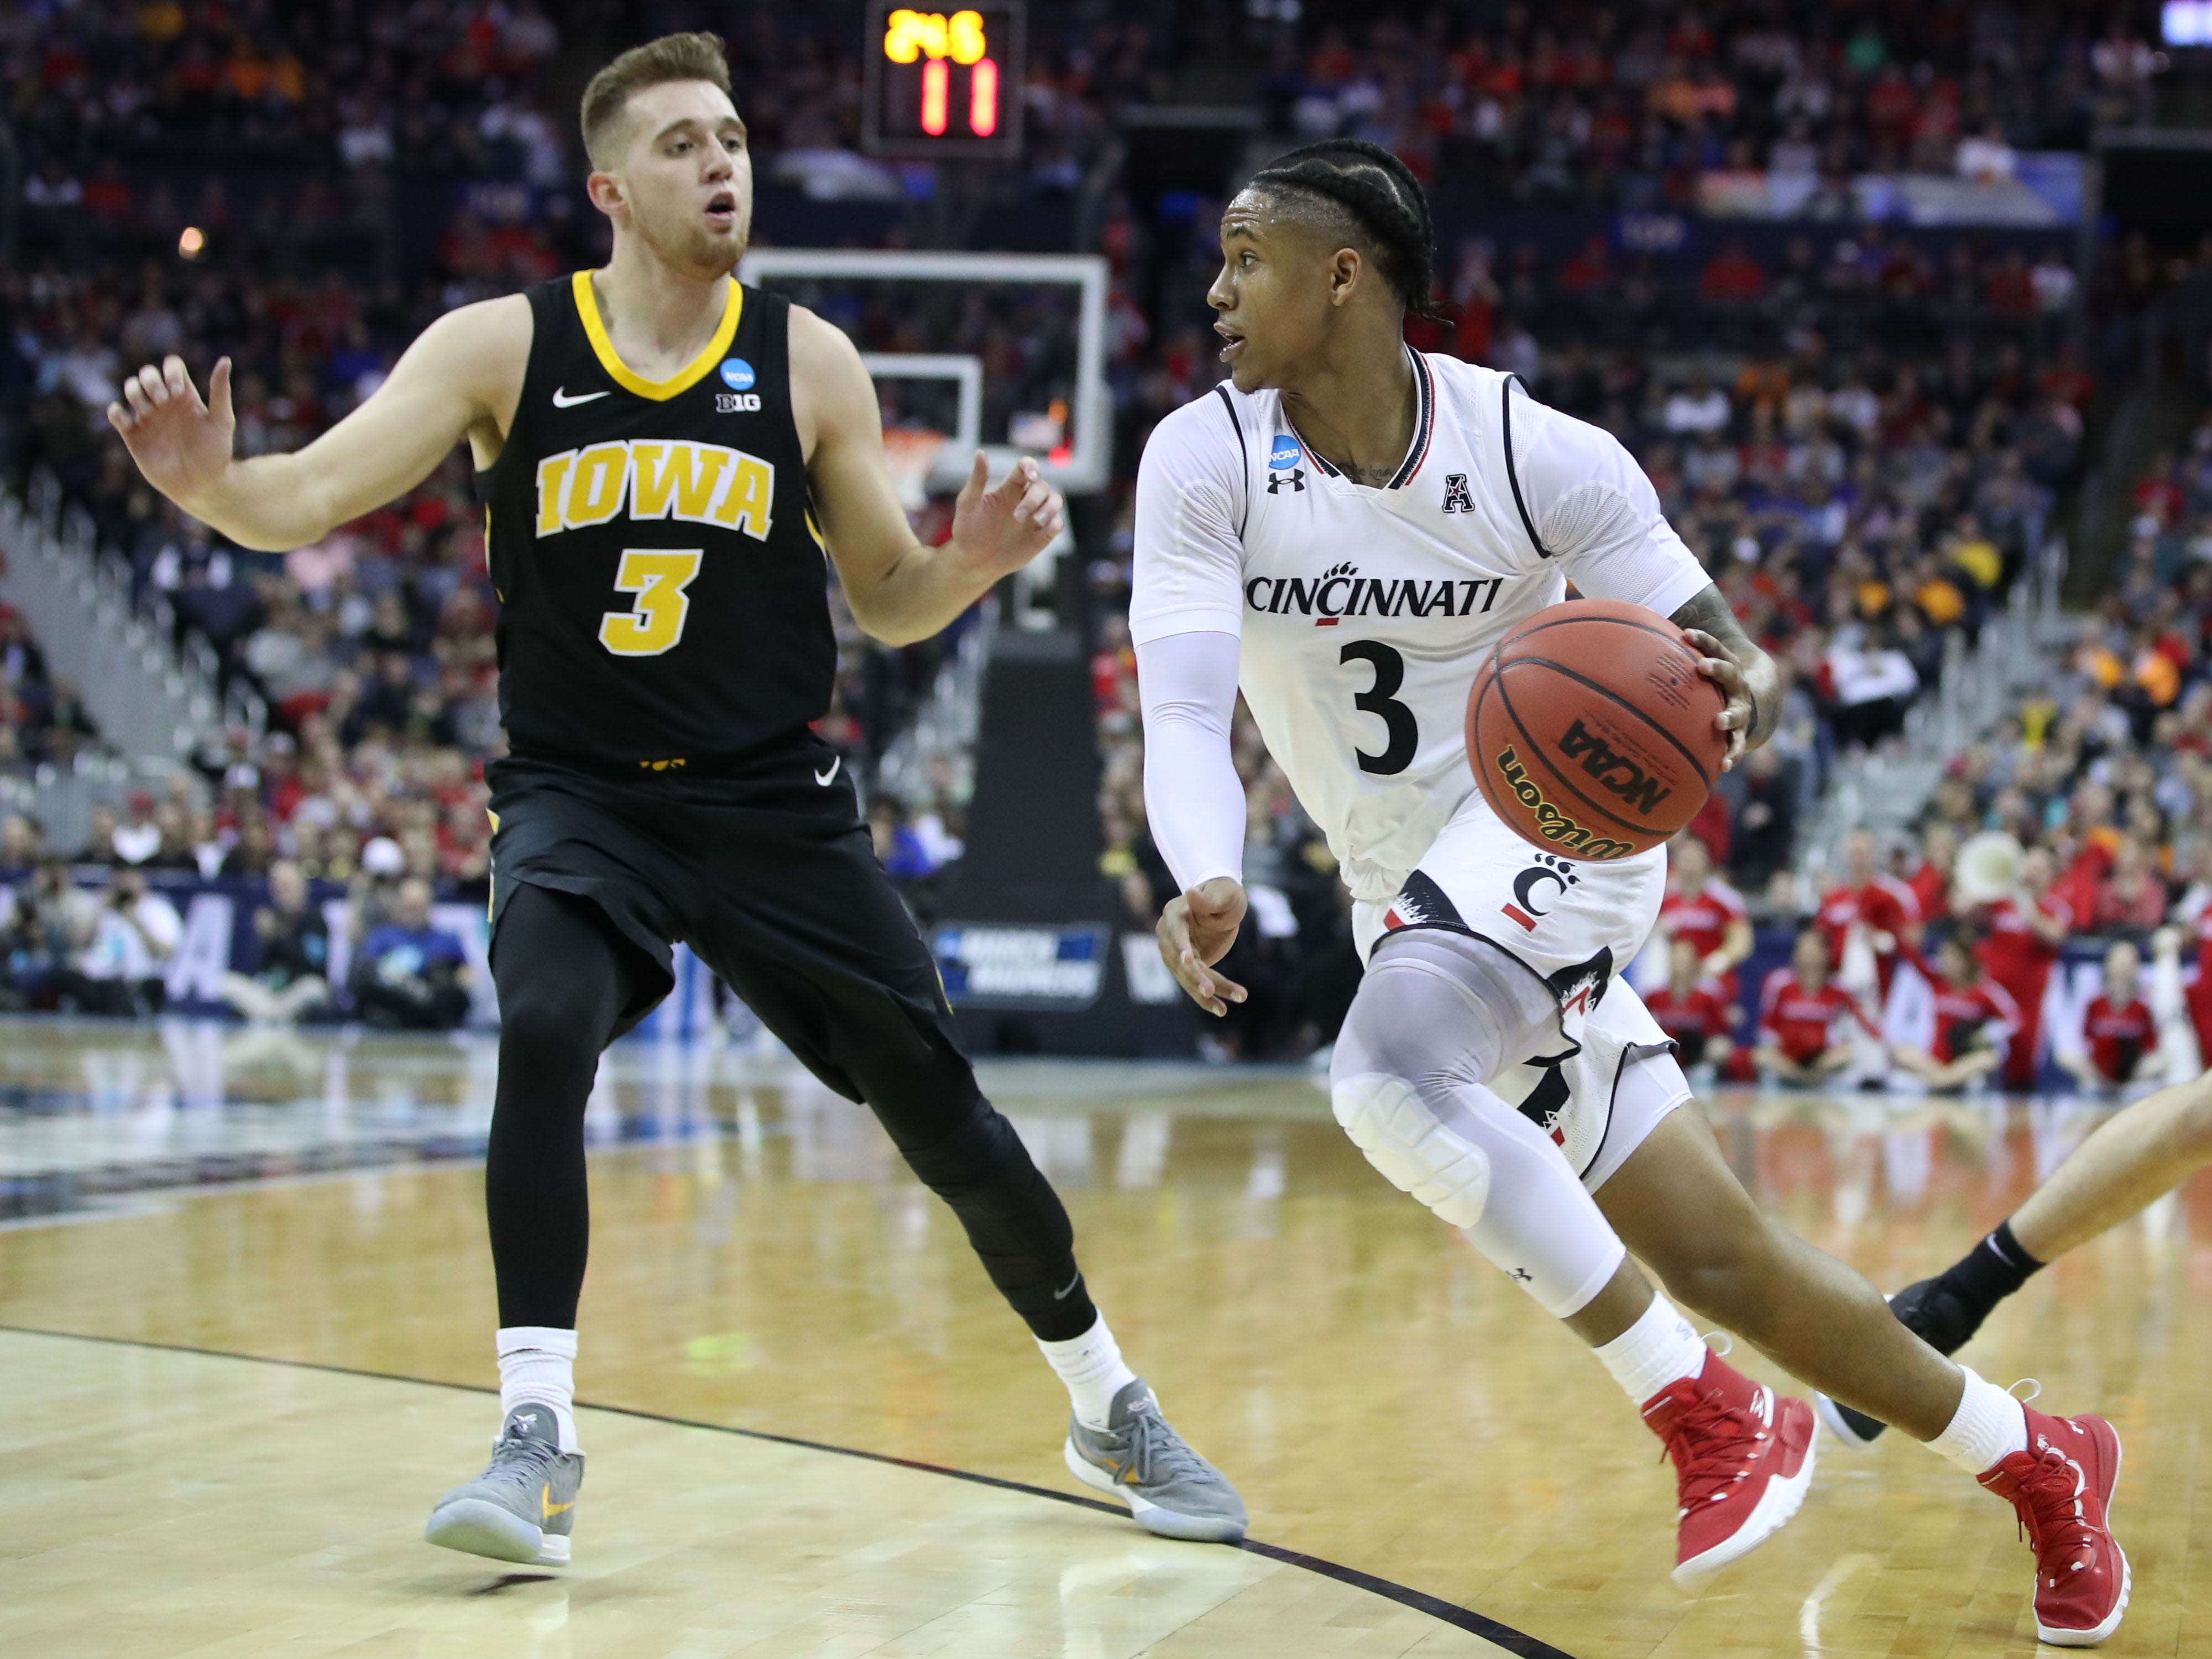 Cincinnati Bearcats guard Justin Jenifer (3) drives down the court defended by Iowa Hawkeyes guard Jordan Bohannon (3) in the first half in the first round of the 2019 NCAA Tournament at Nationwide Arena on March 22, 2019.